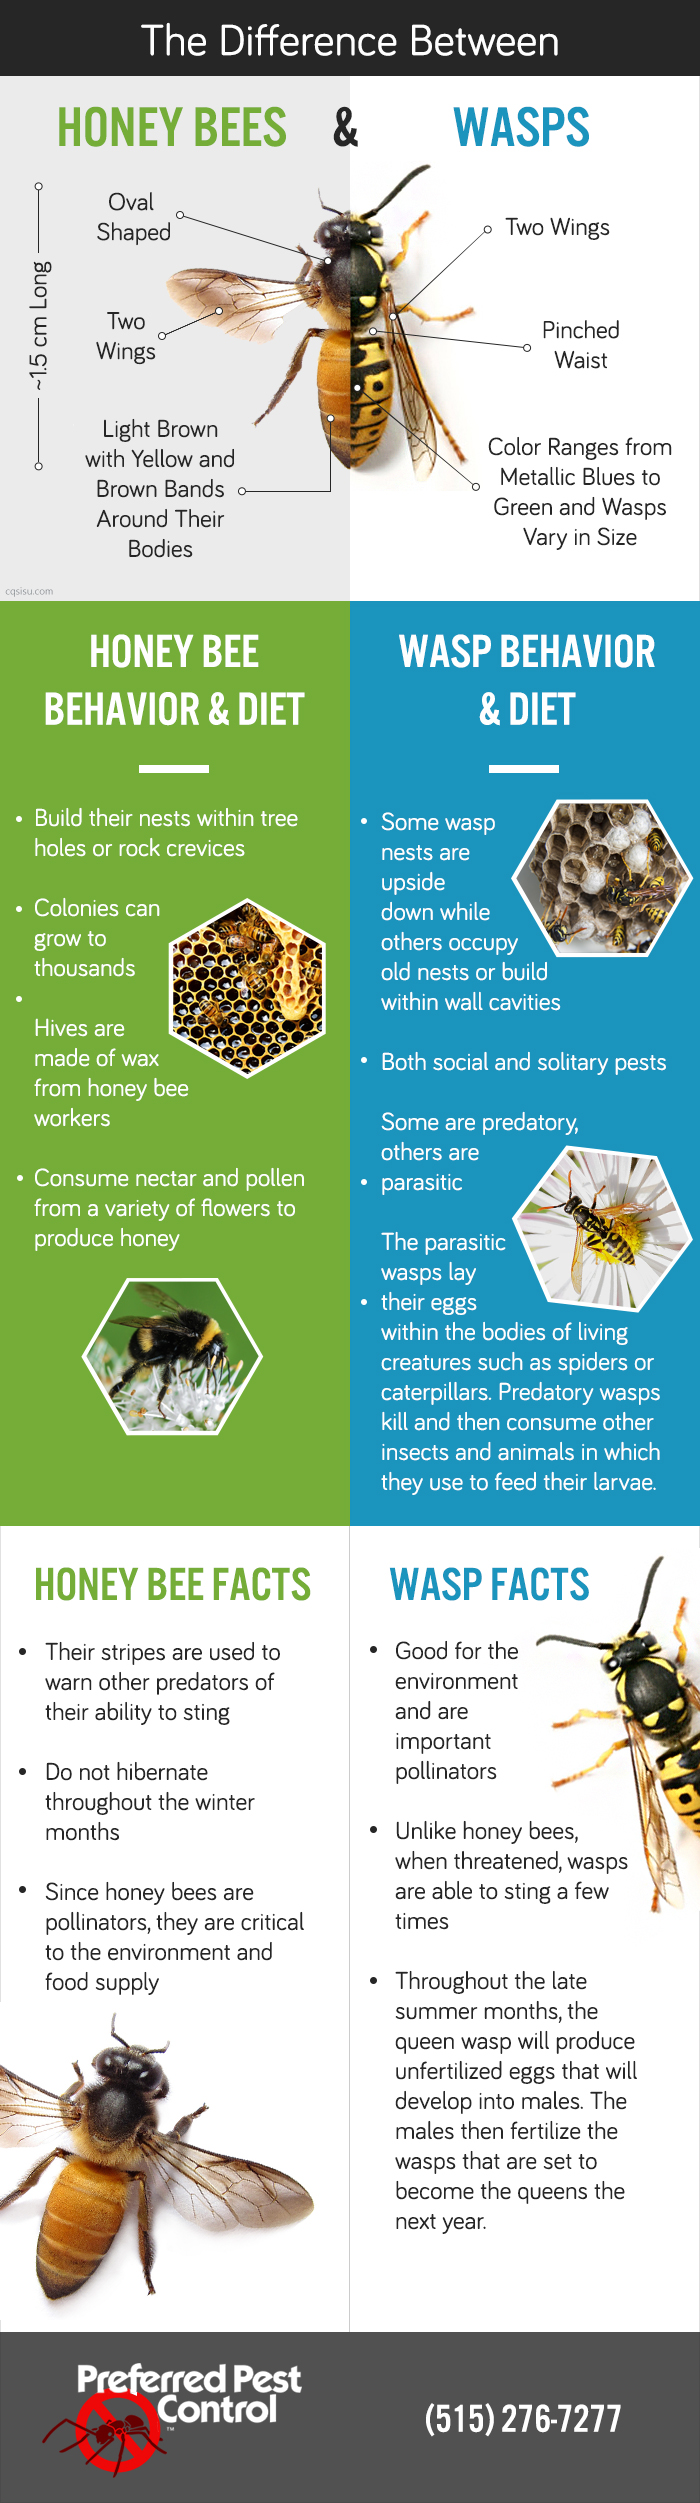 honeybee-and-wasps-updated